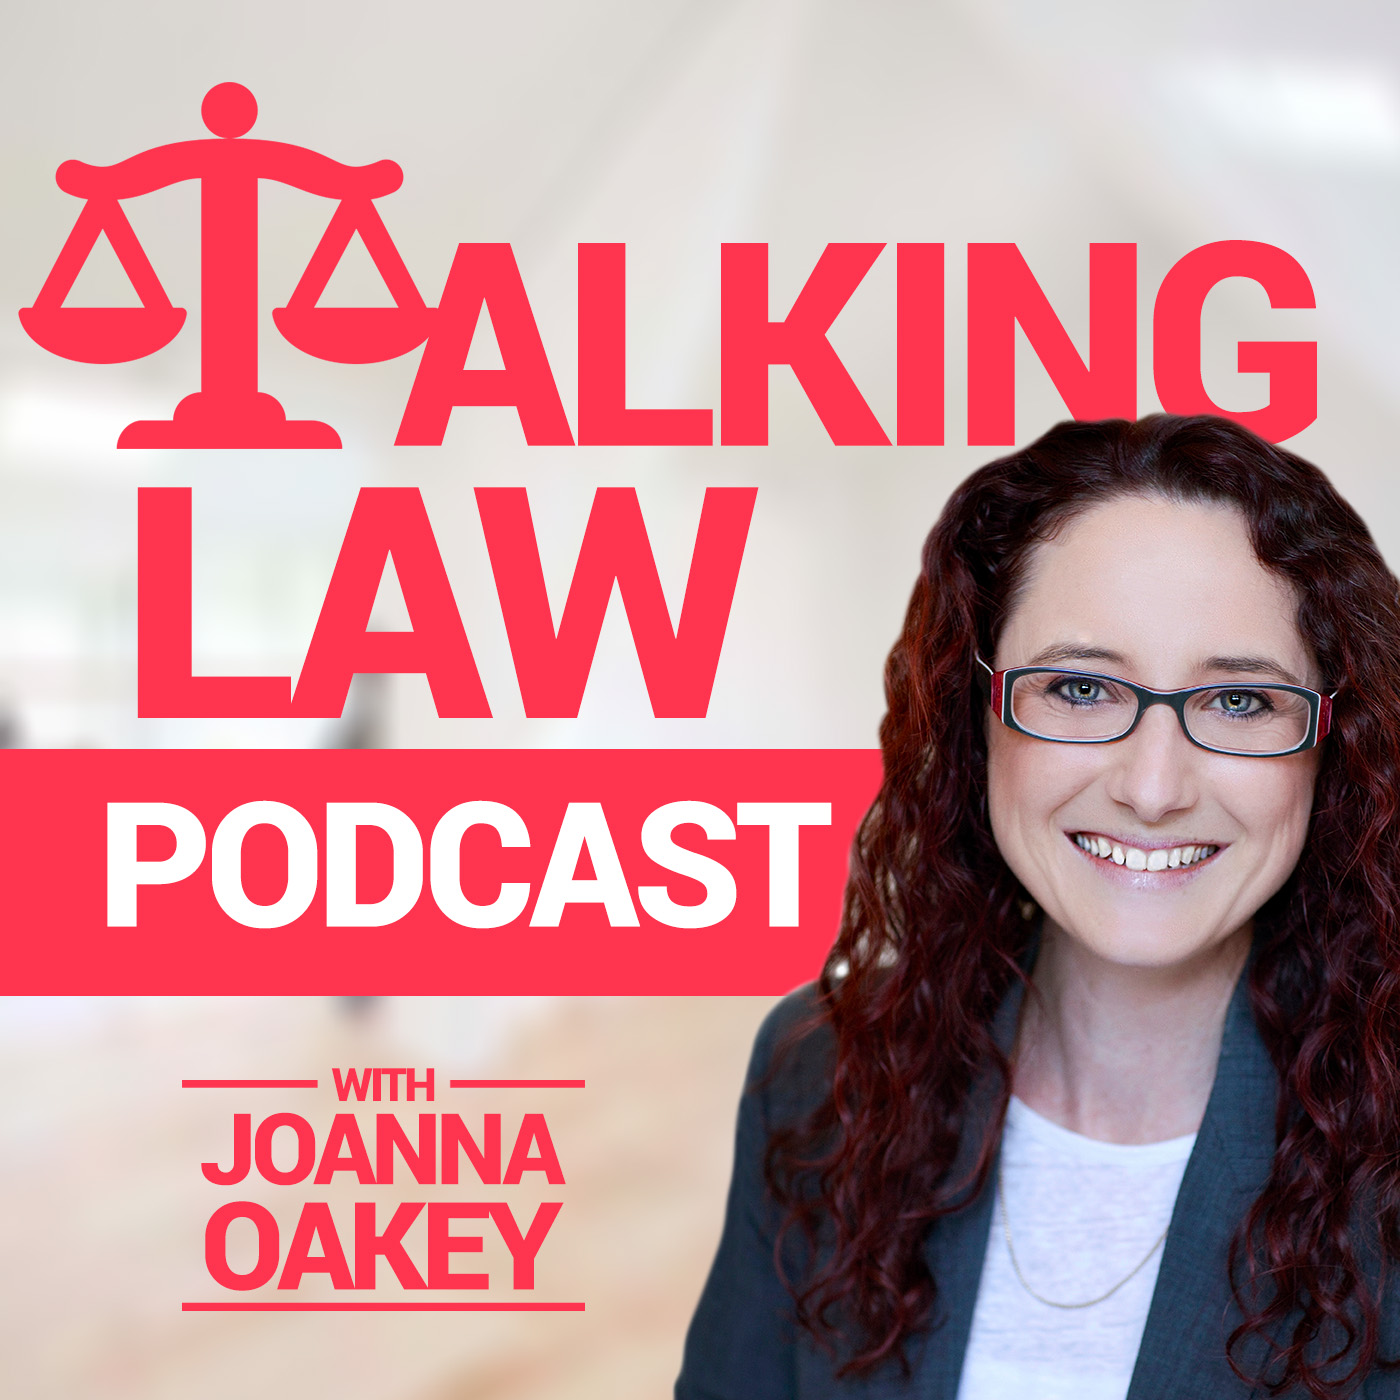 Talking Law:  legit legal tips for business, with all the jargon stripped away